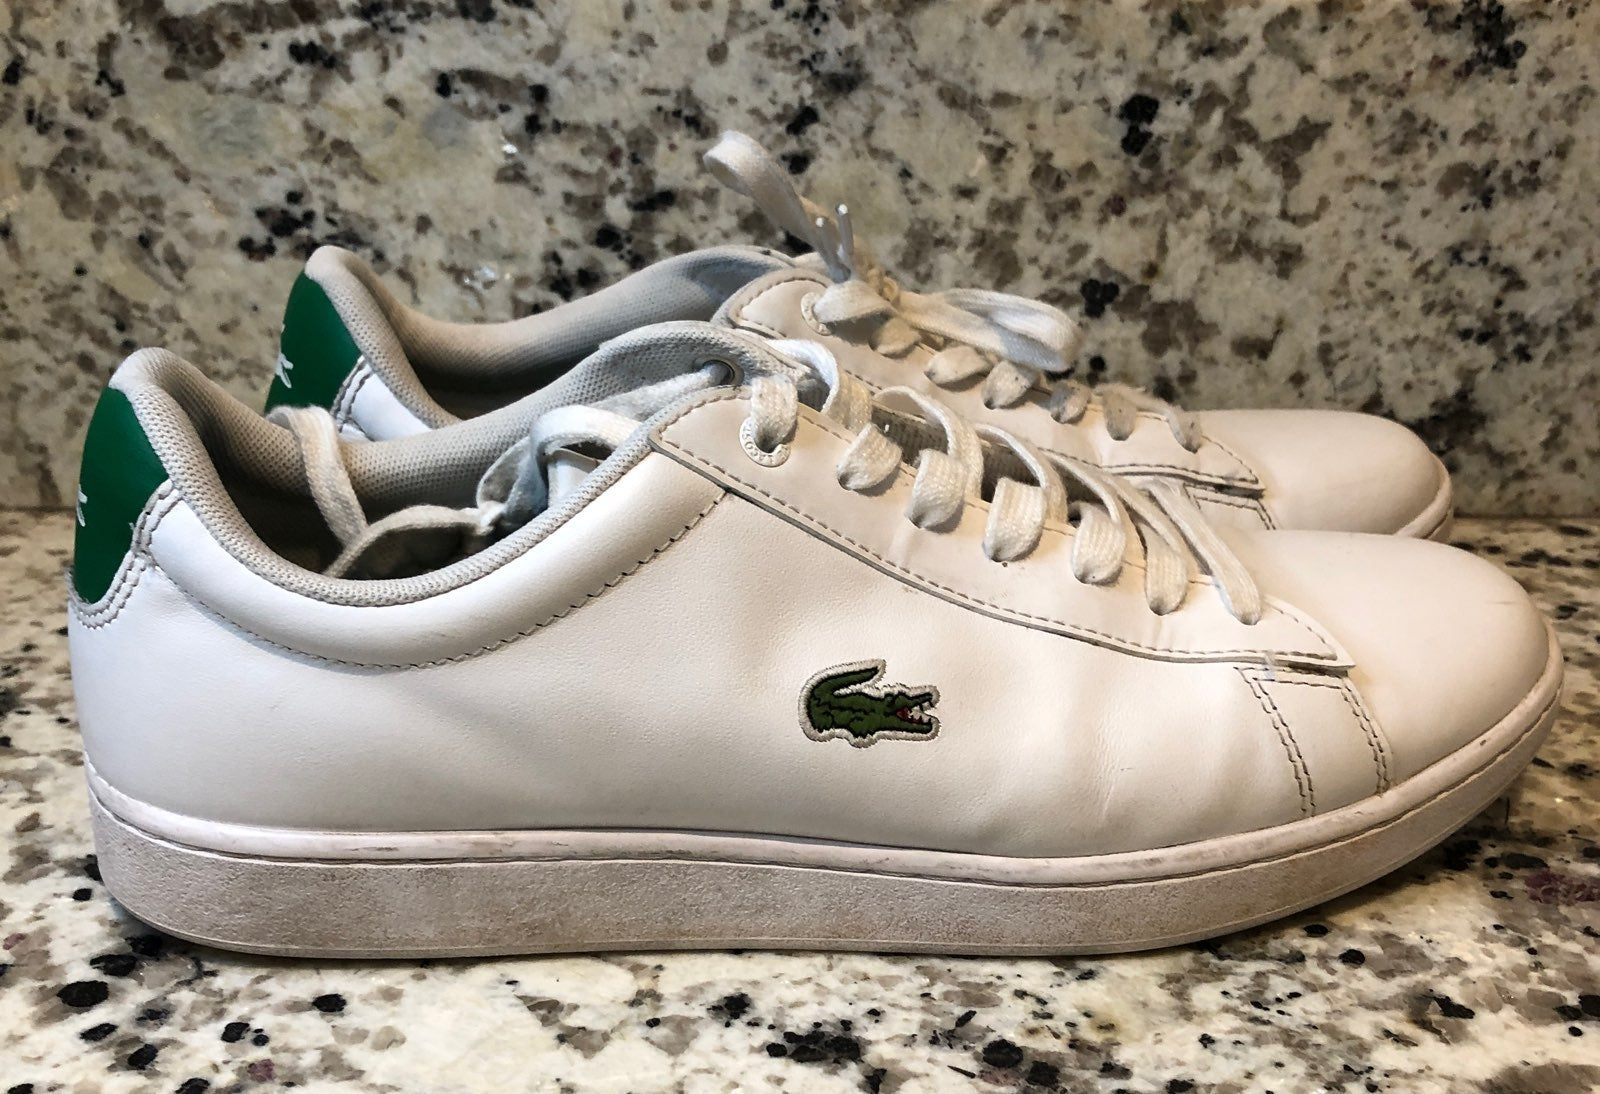 Lacoste Hydez White Green Leather Sz 10